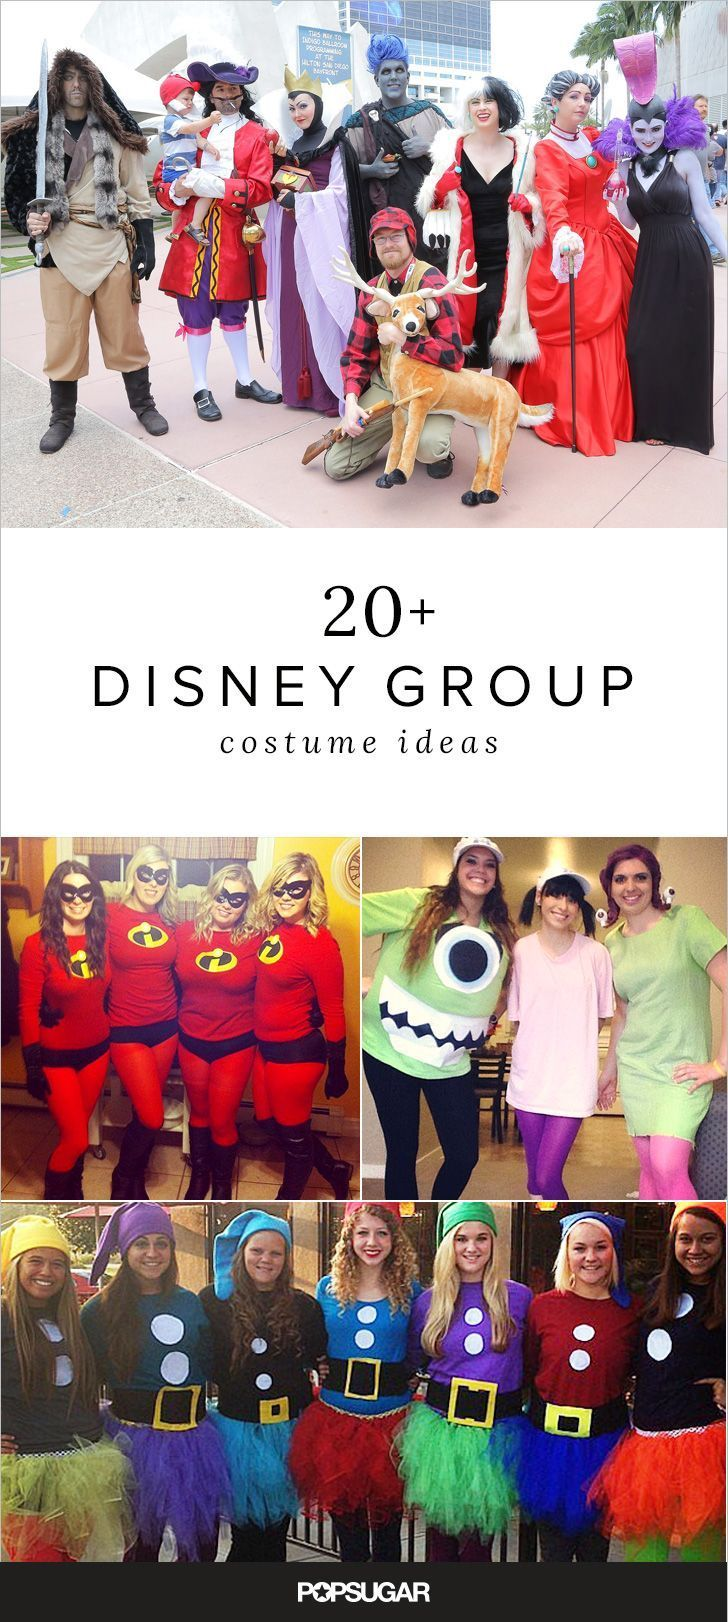 50 Group Disney Costume Ideas For You and Your Squad to Wear This Halloween